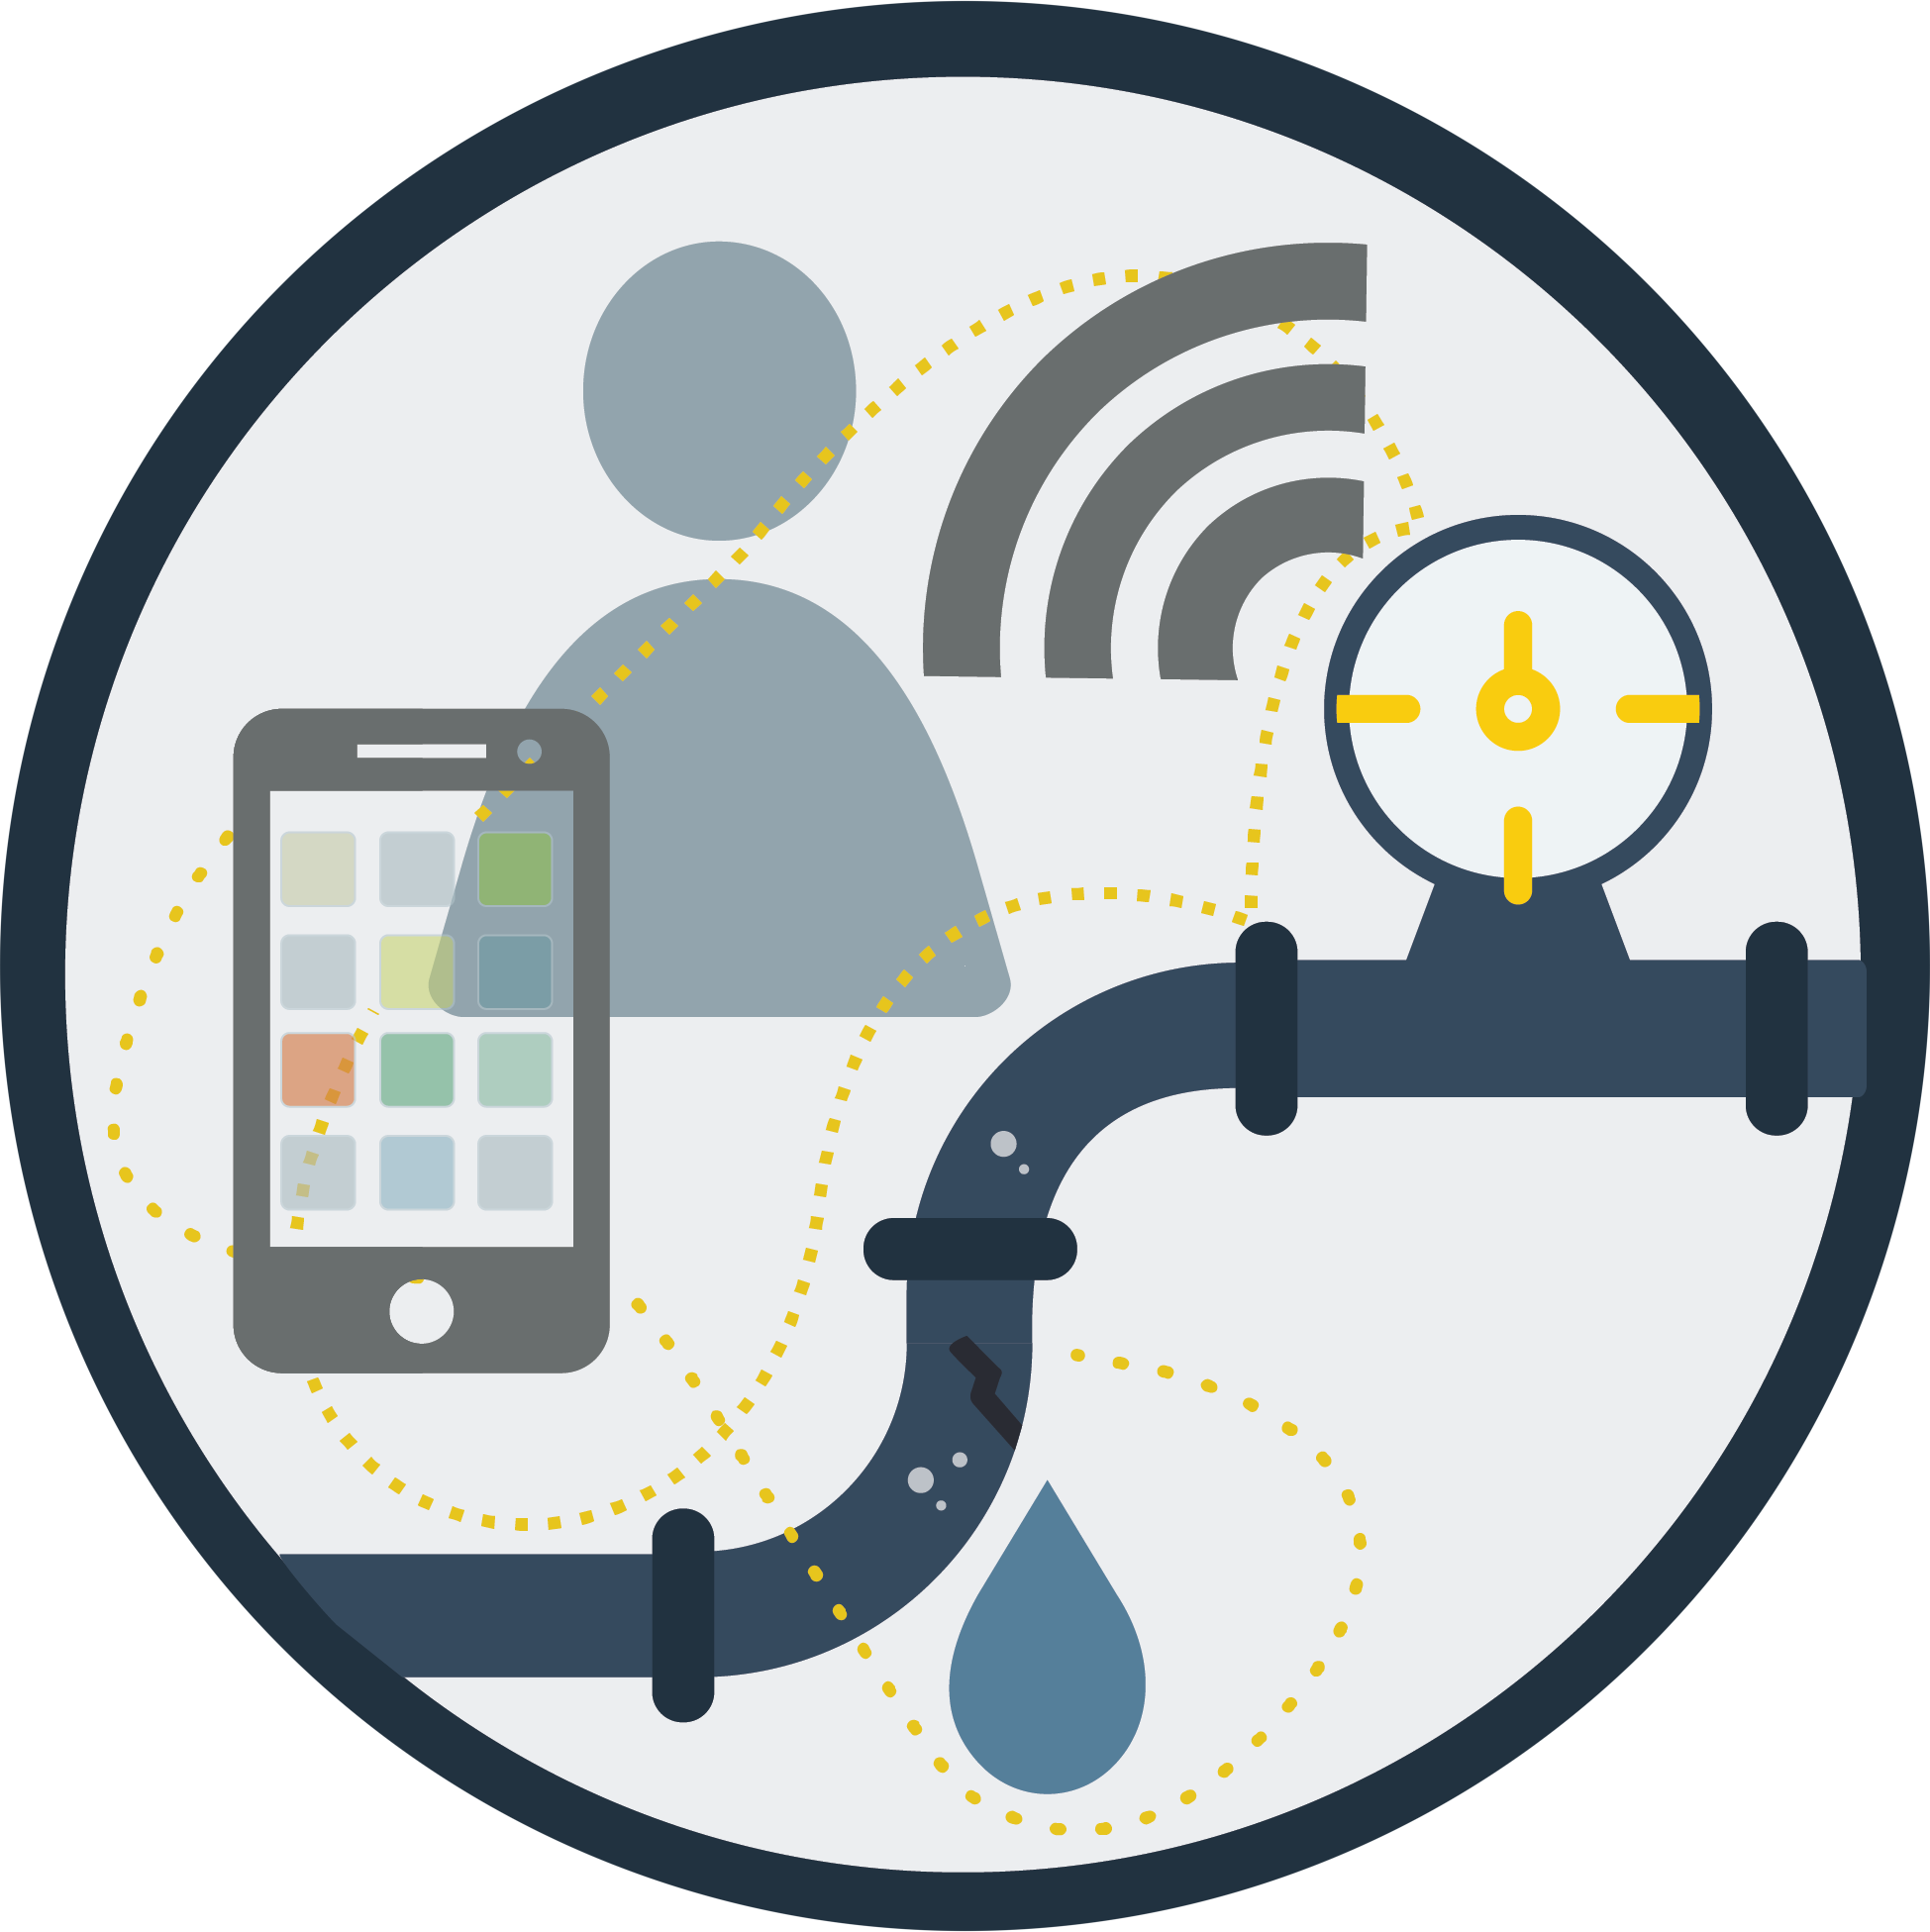 ICT4WASH102: ICT for Water Service Providers